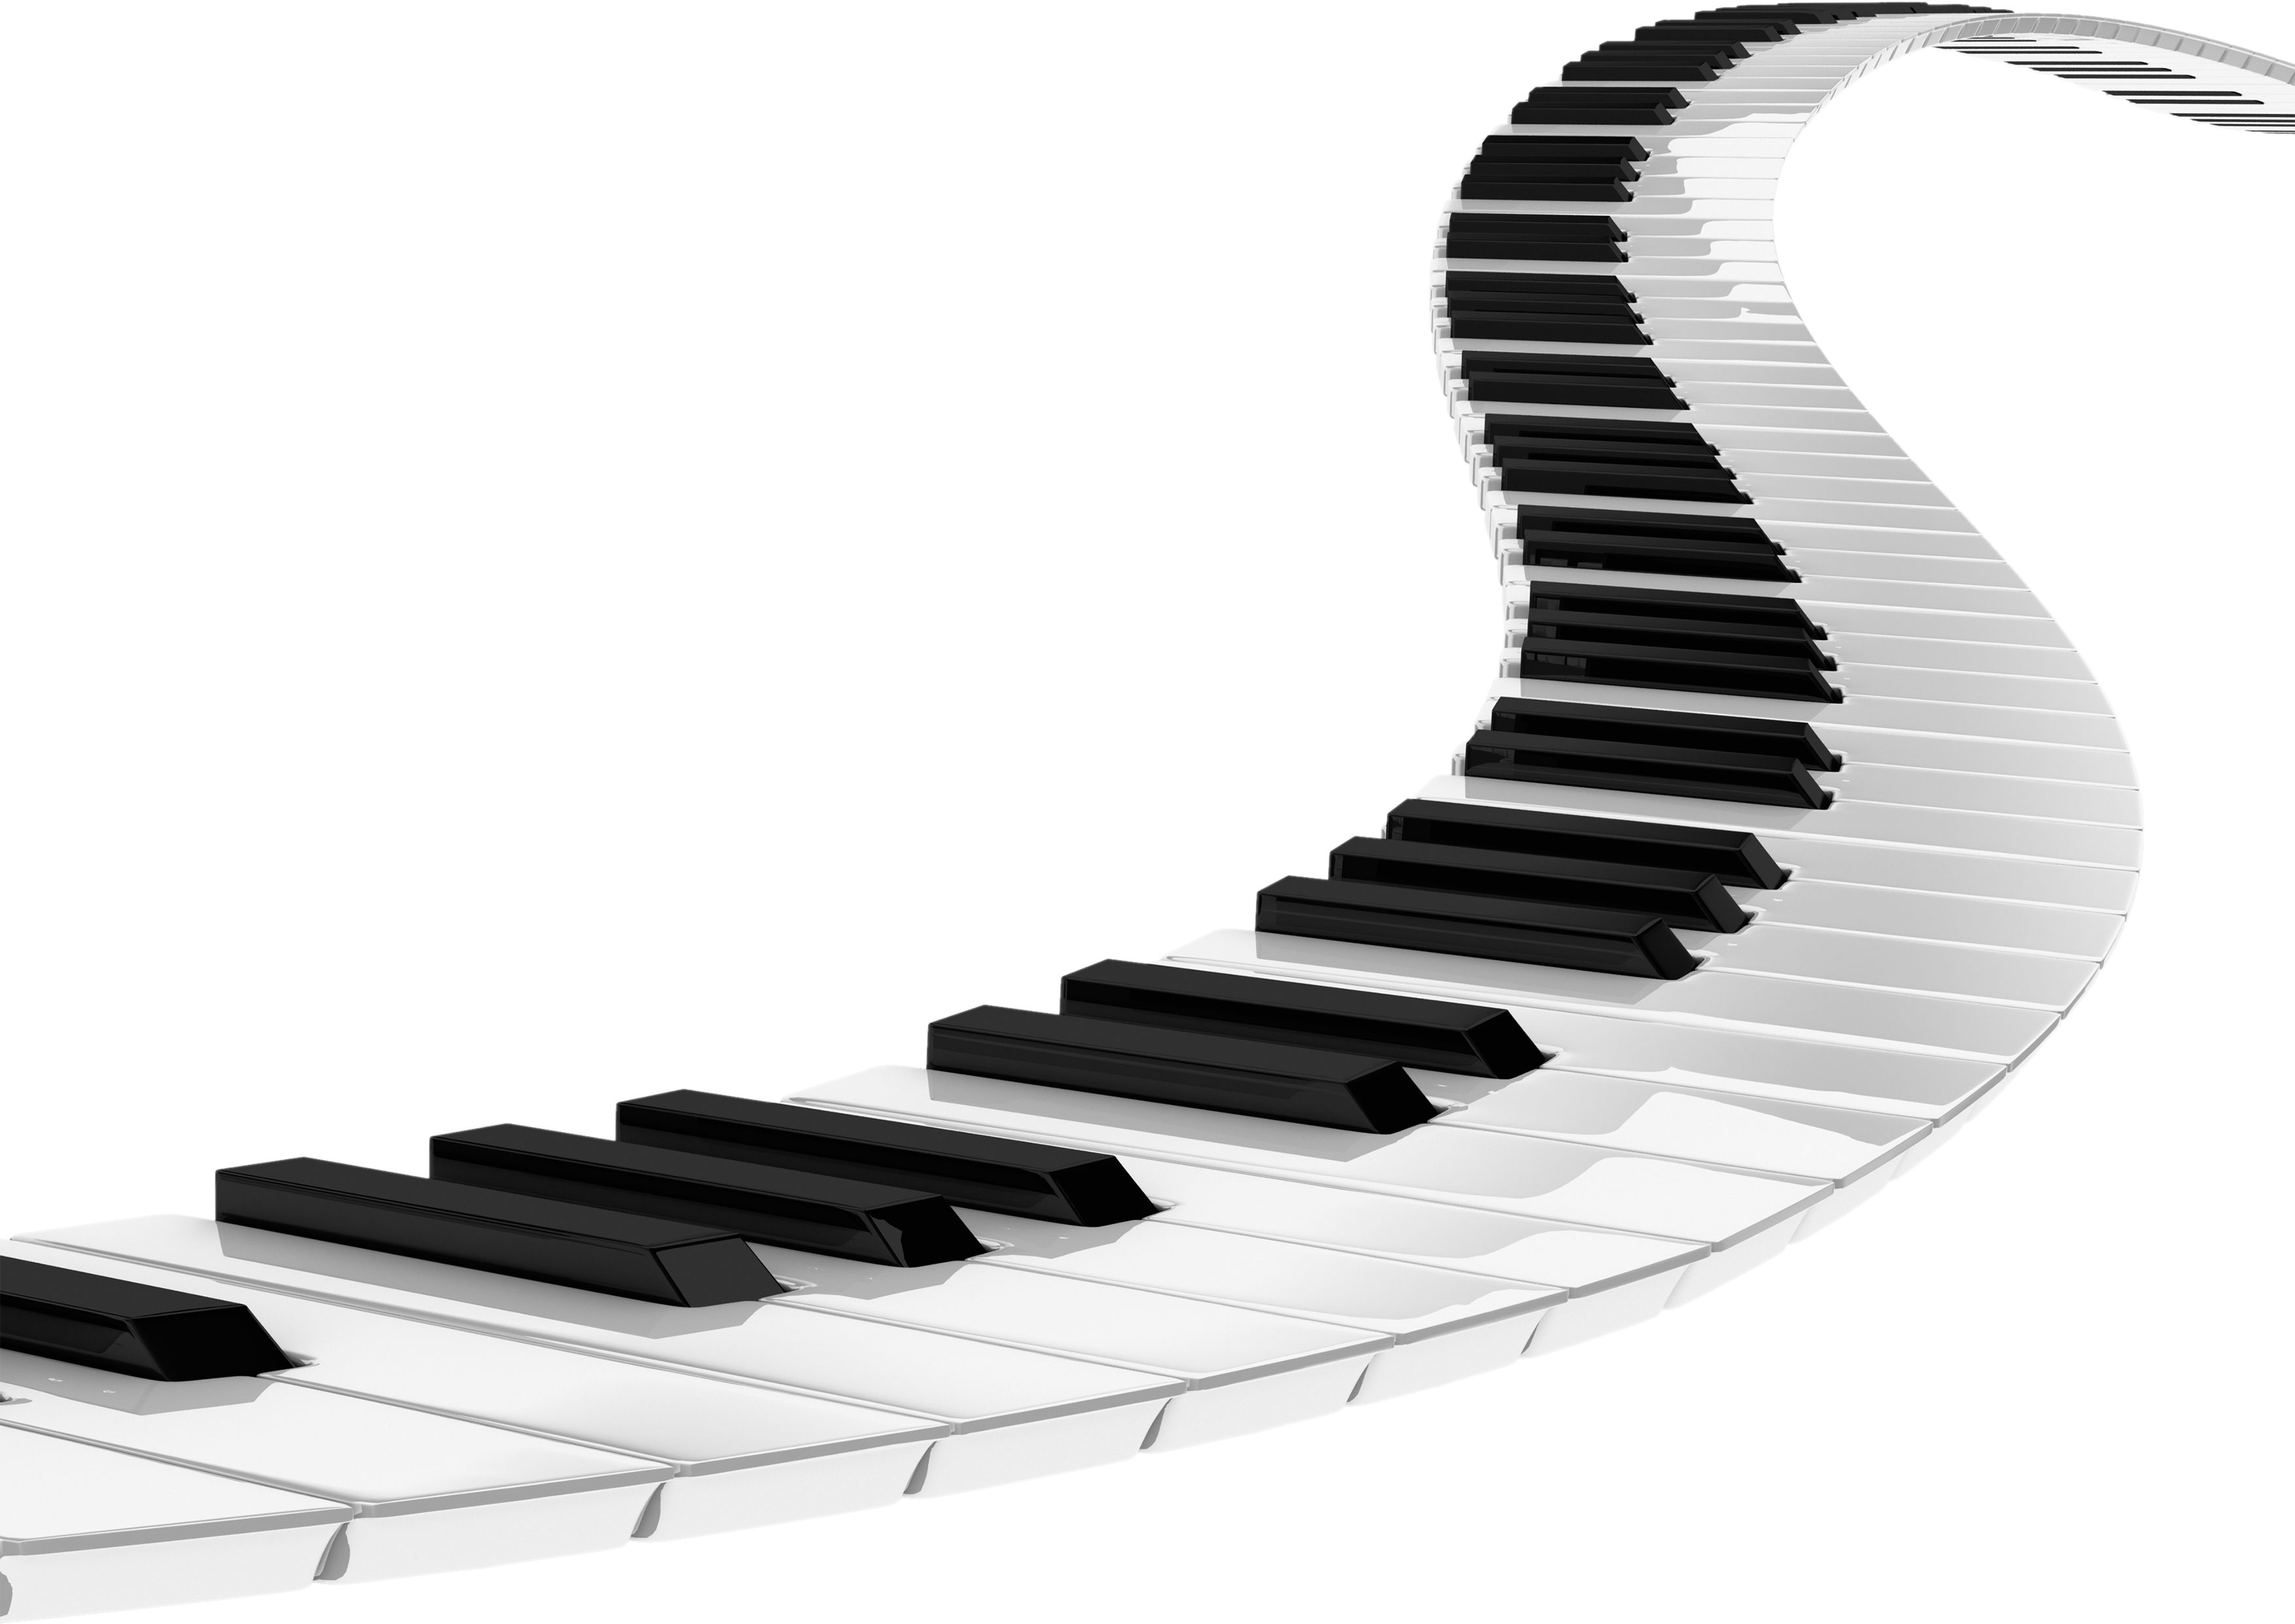 Piano PNG Image Without Background   Web Icons PNG